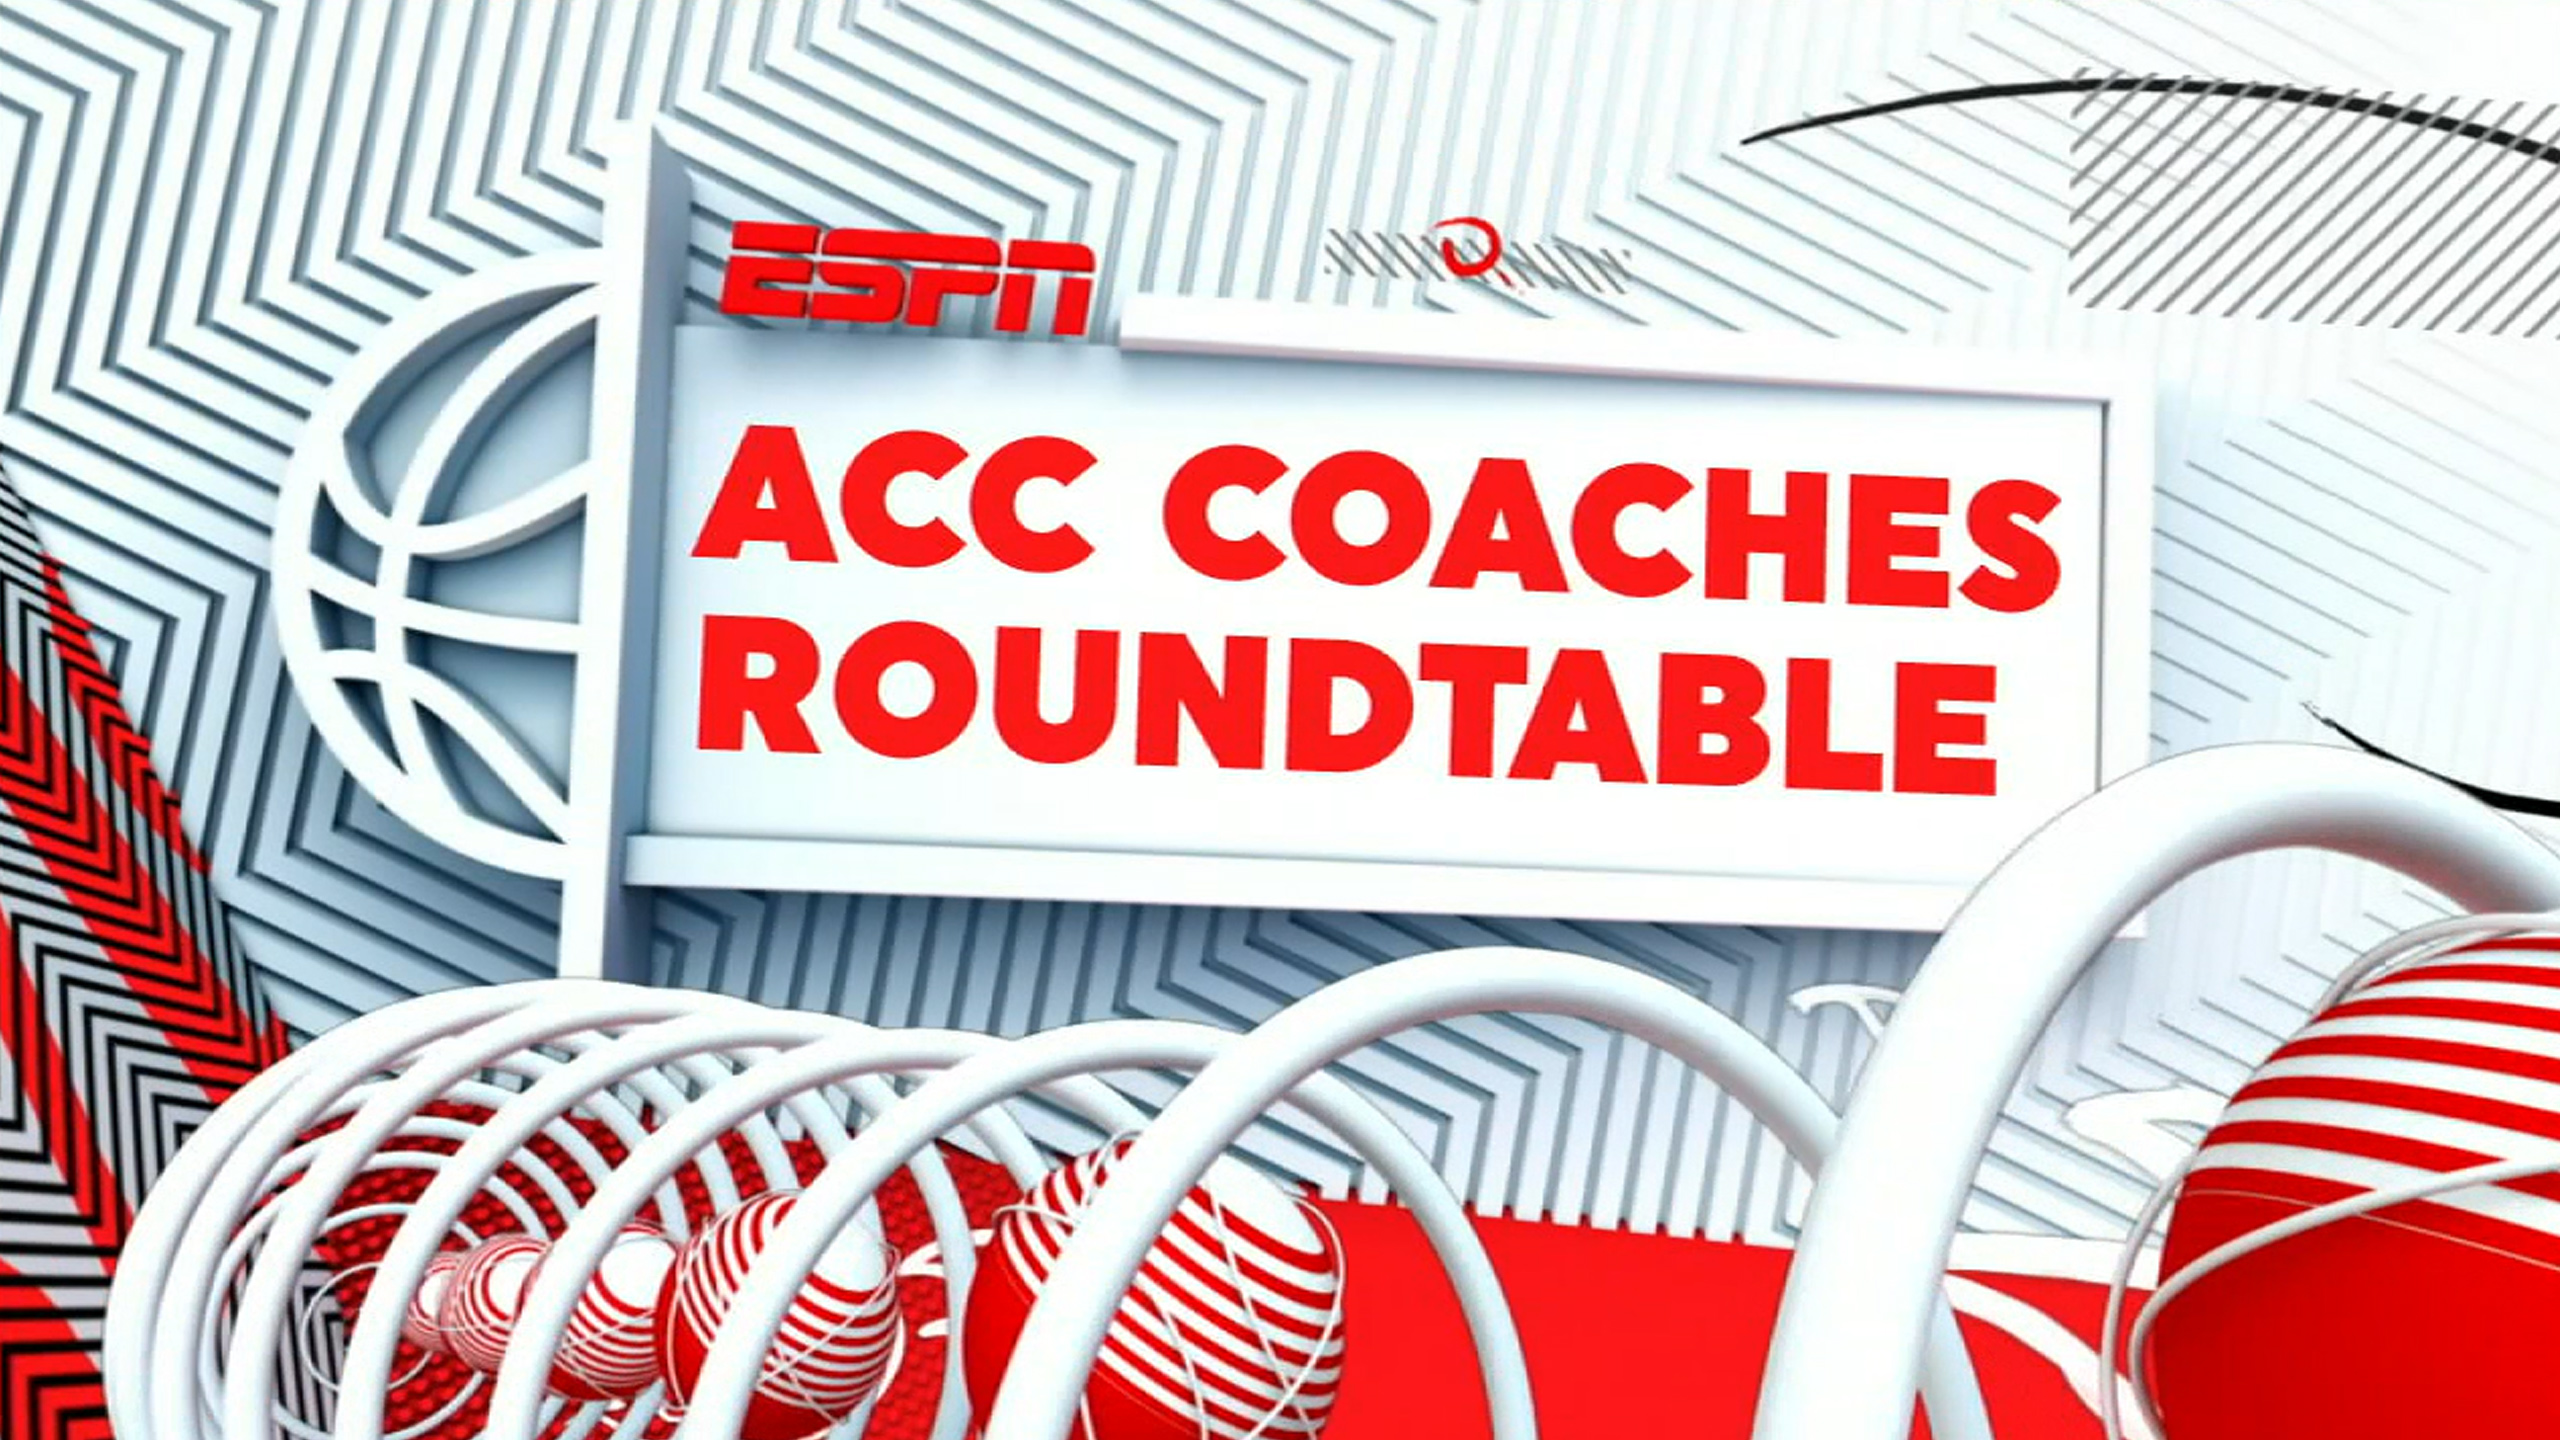 College Basketball Live: ACC Coaches Roundtable